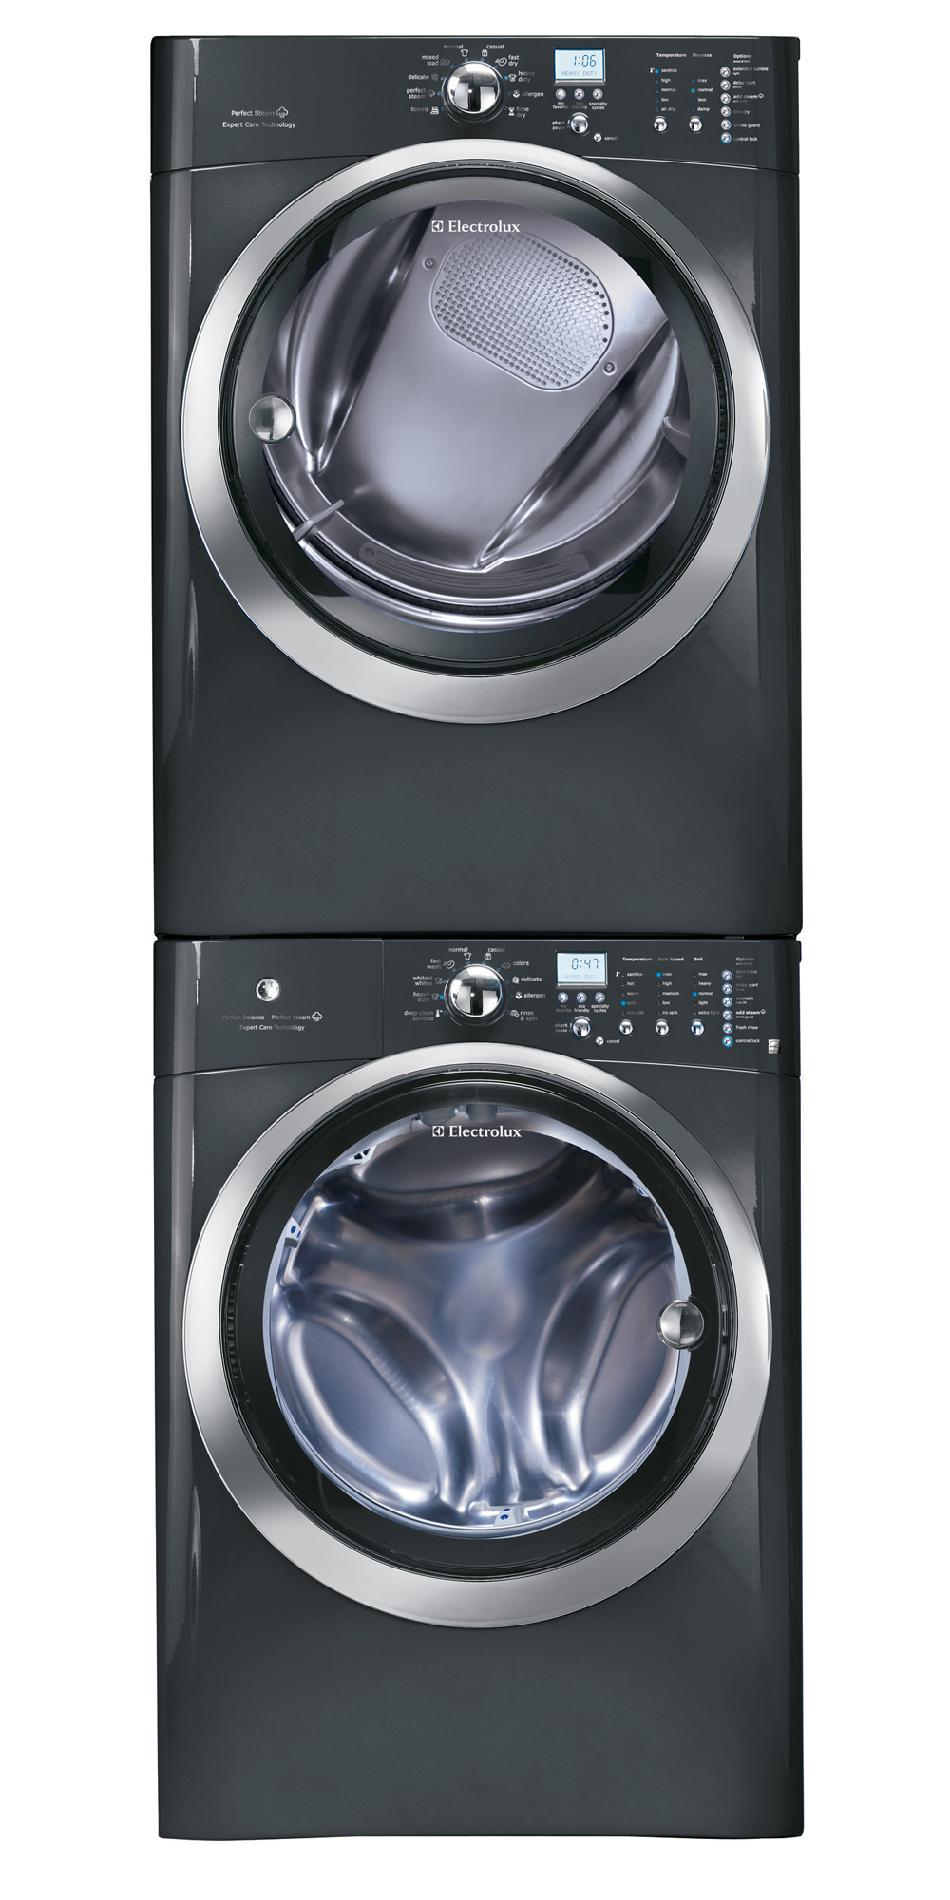 Electrolux 4.3 cu. ft. Front-Load Washer w/ Perfect Steam™ - Titanium